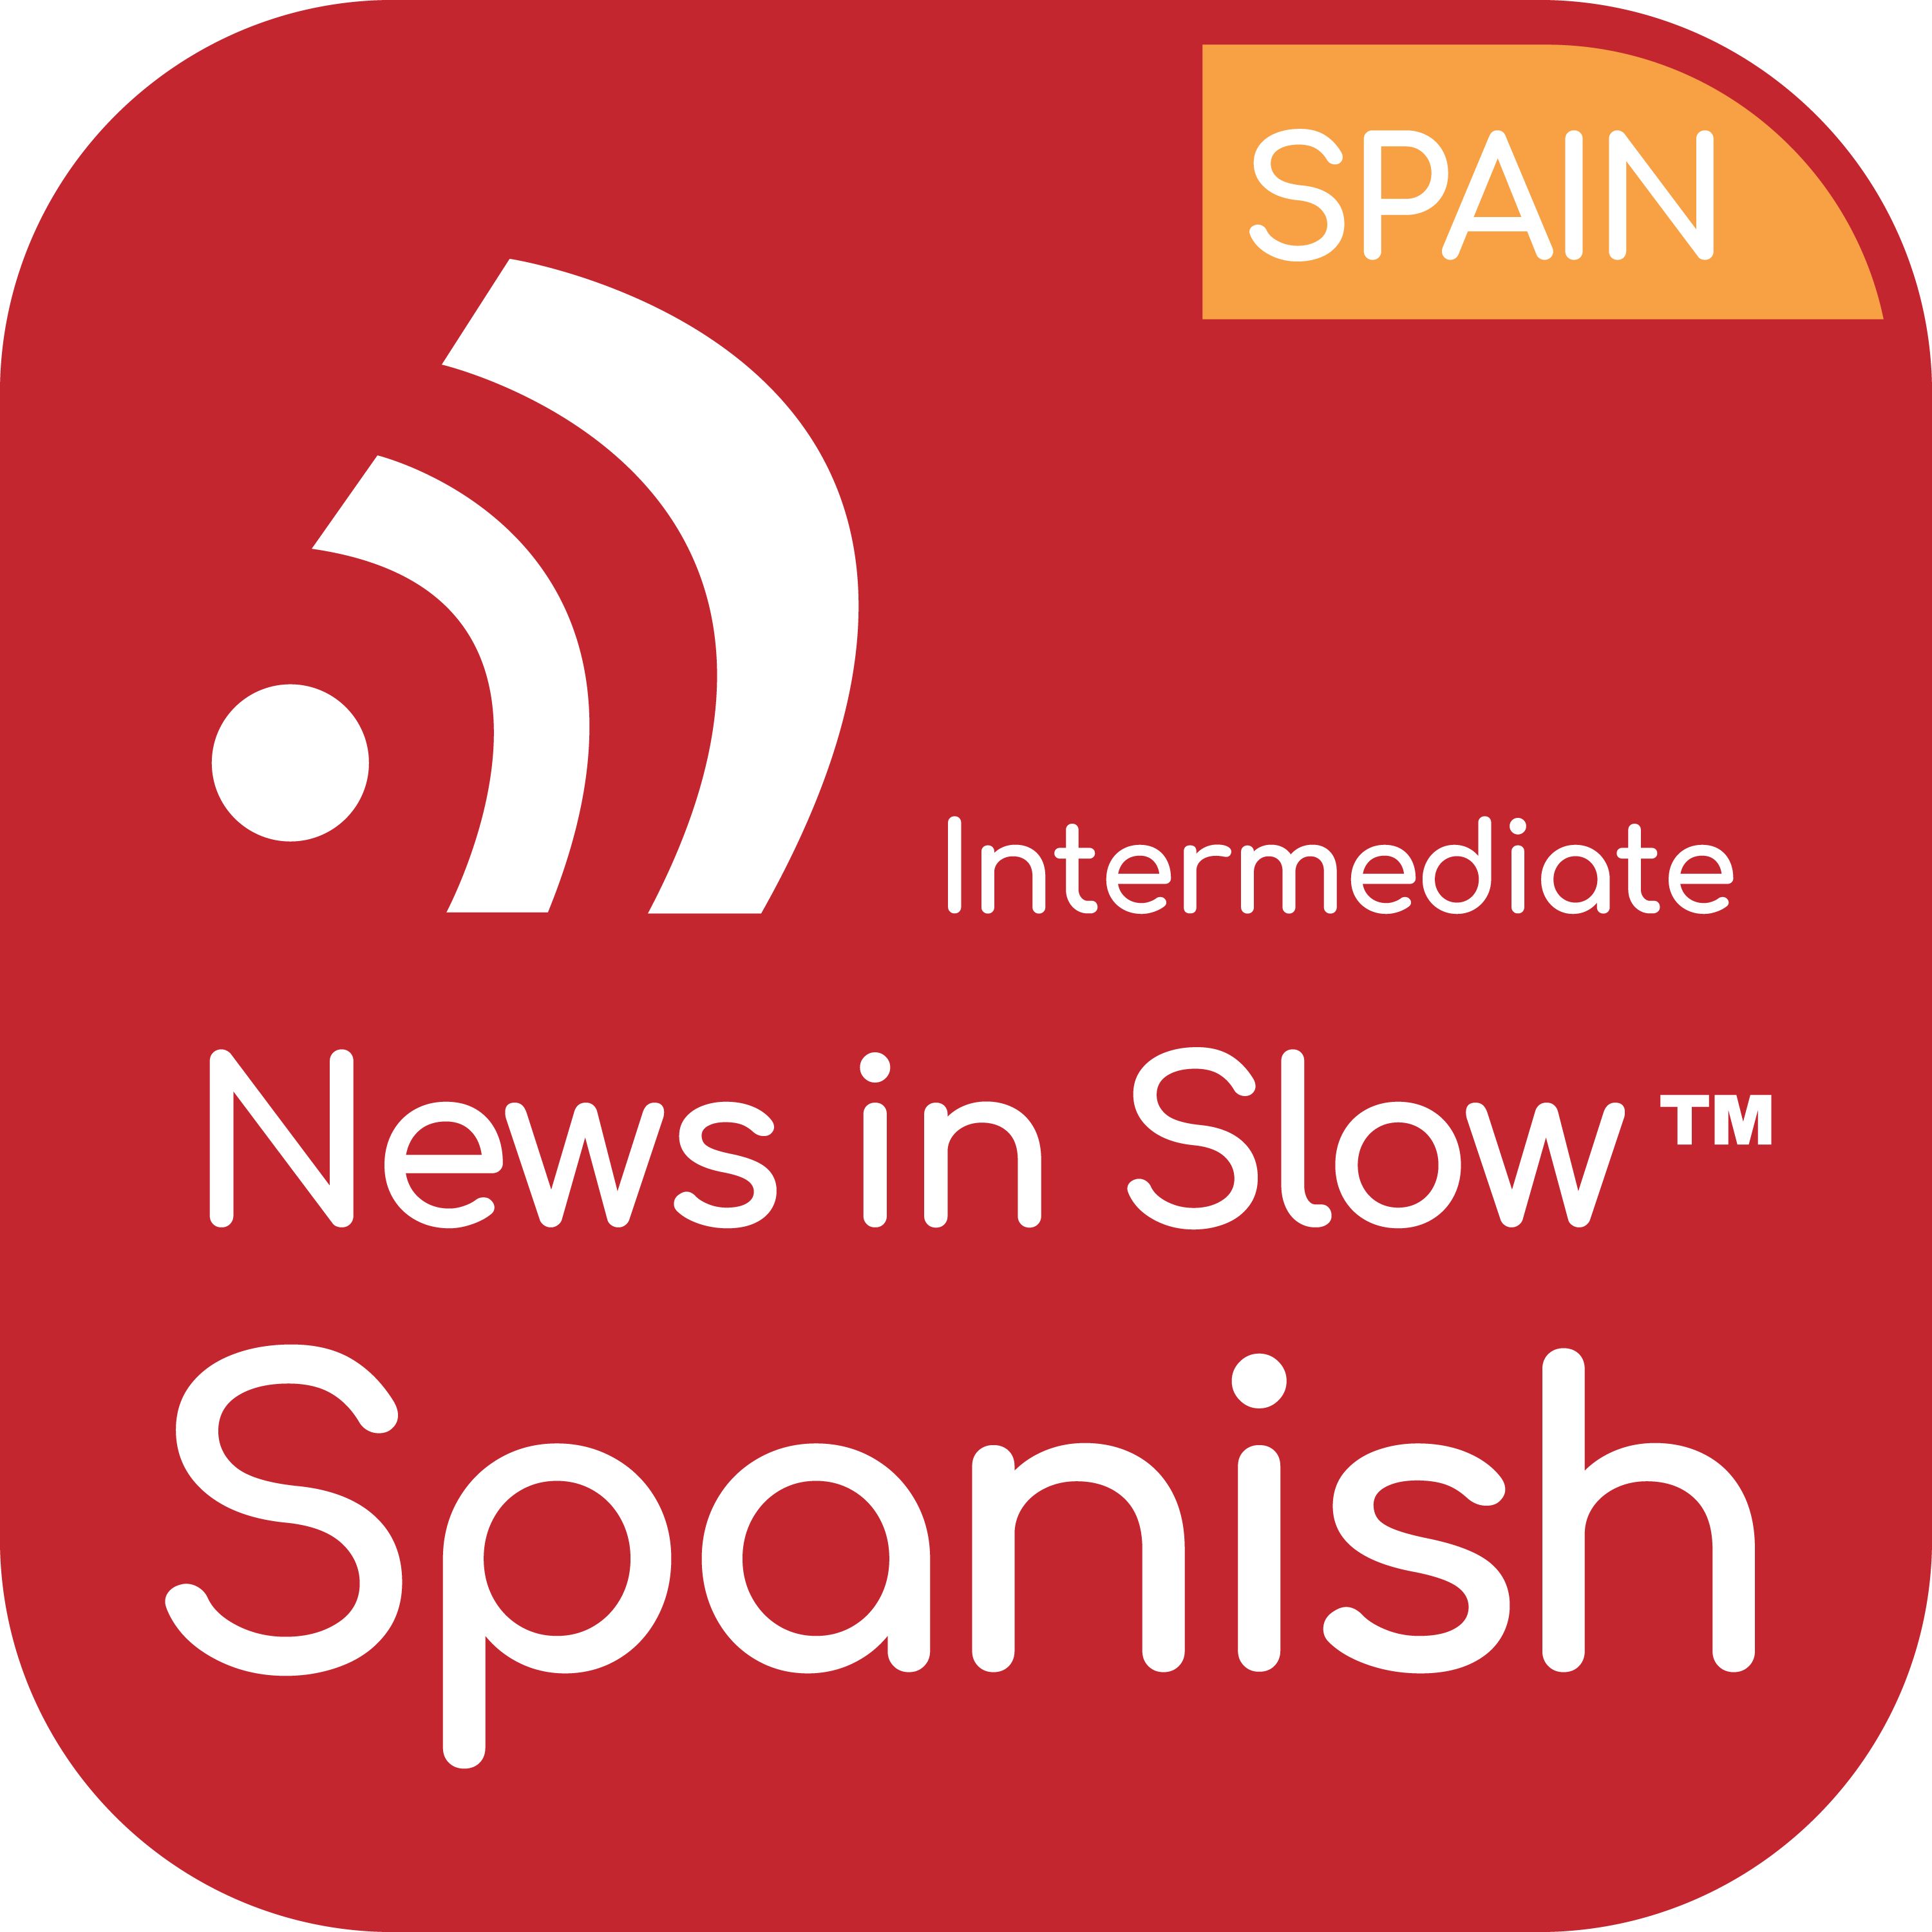 News in Slow Spanish - #569 - Spanish Course with Current Events